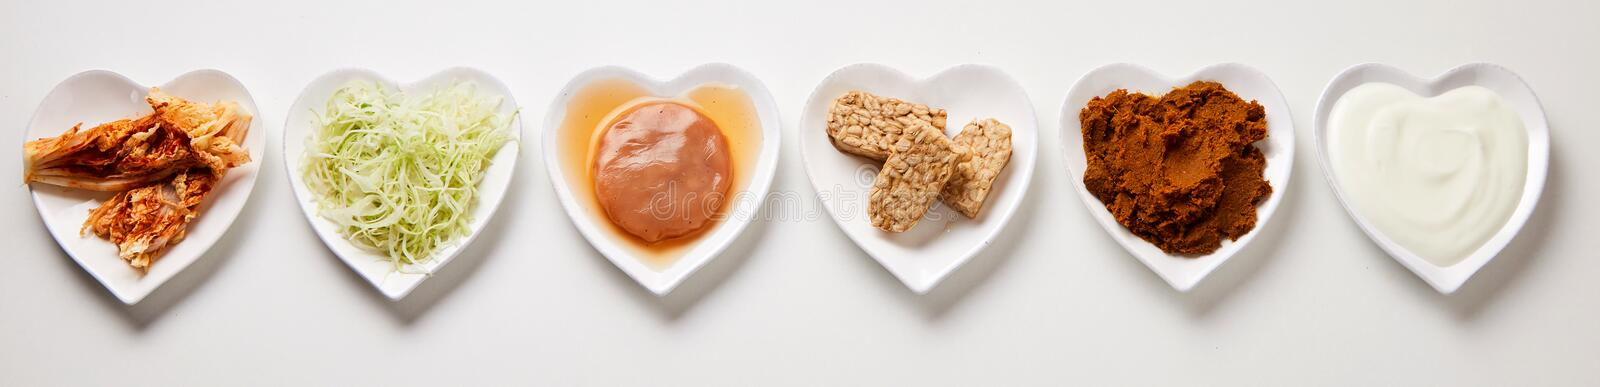 Panorama banner of assorted fermented foods stock photo